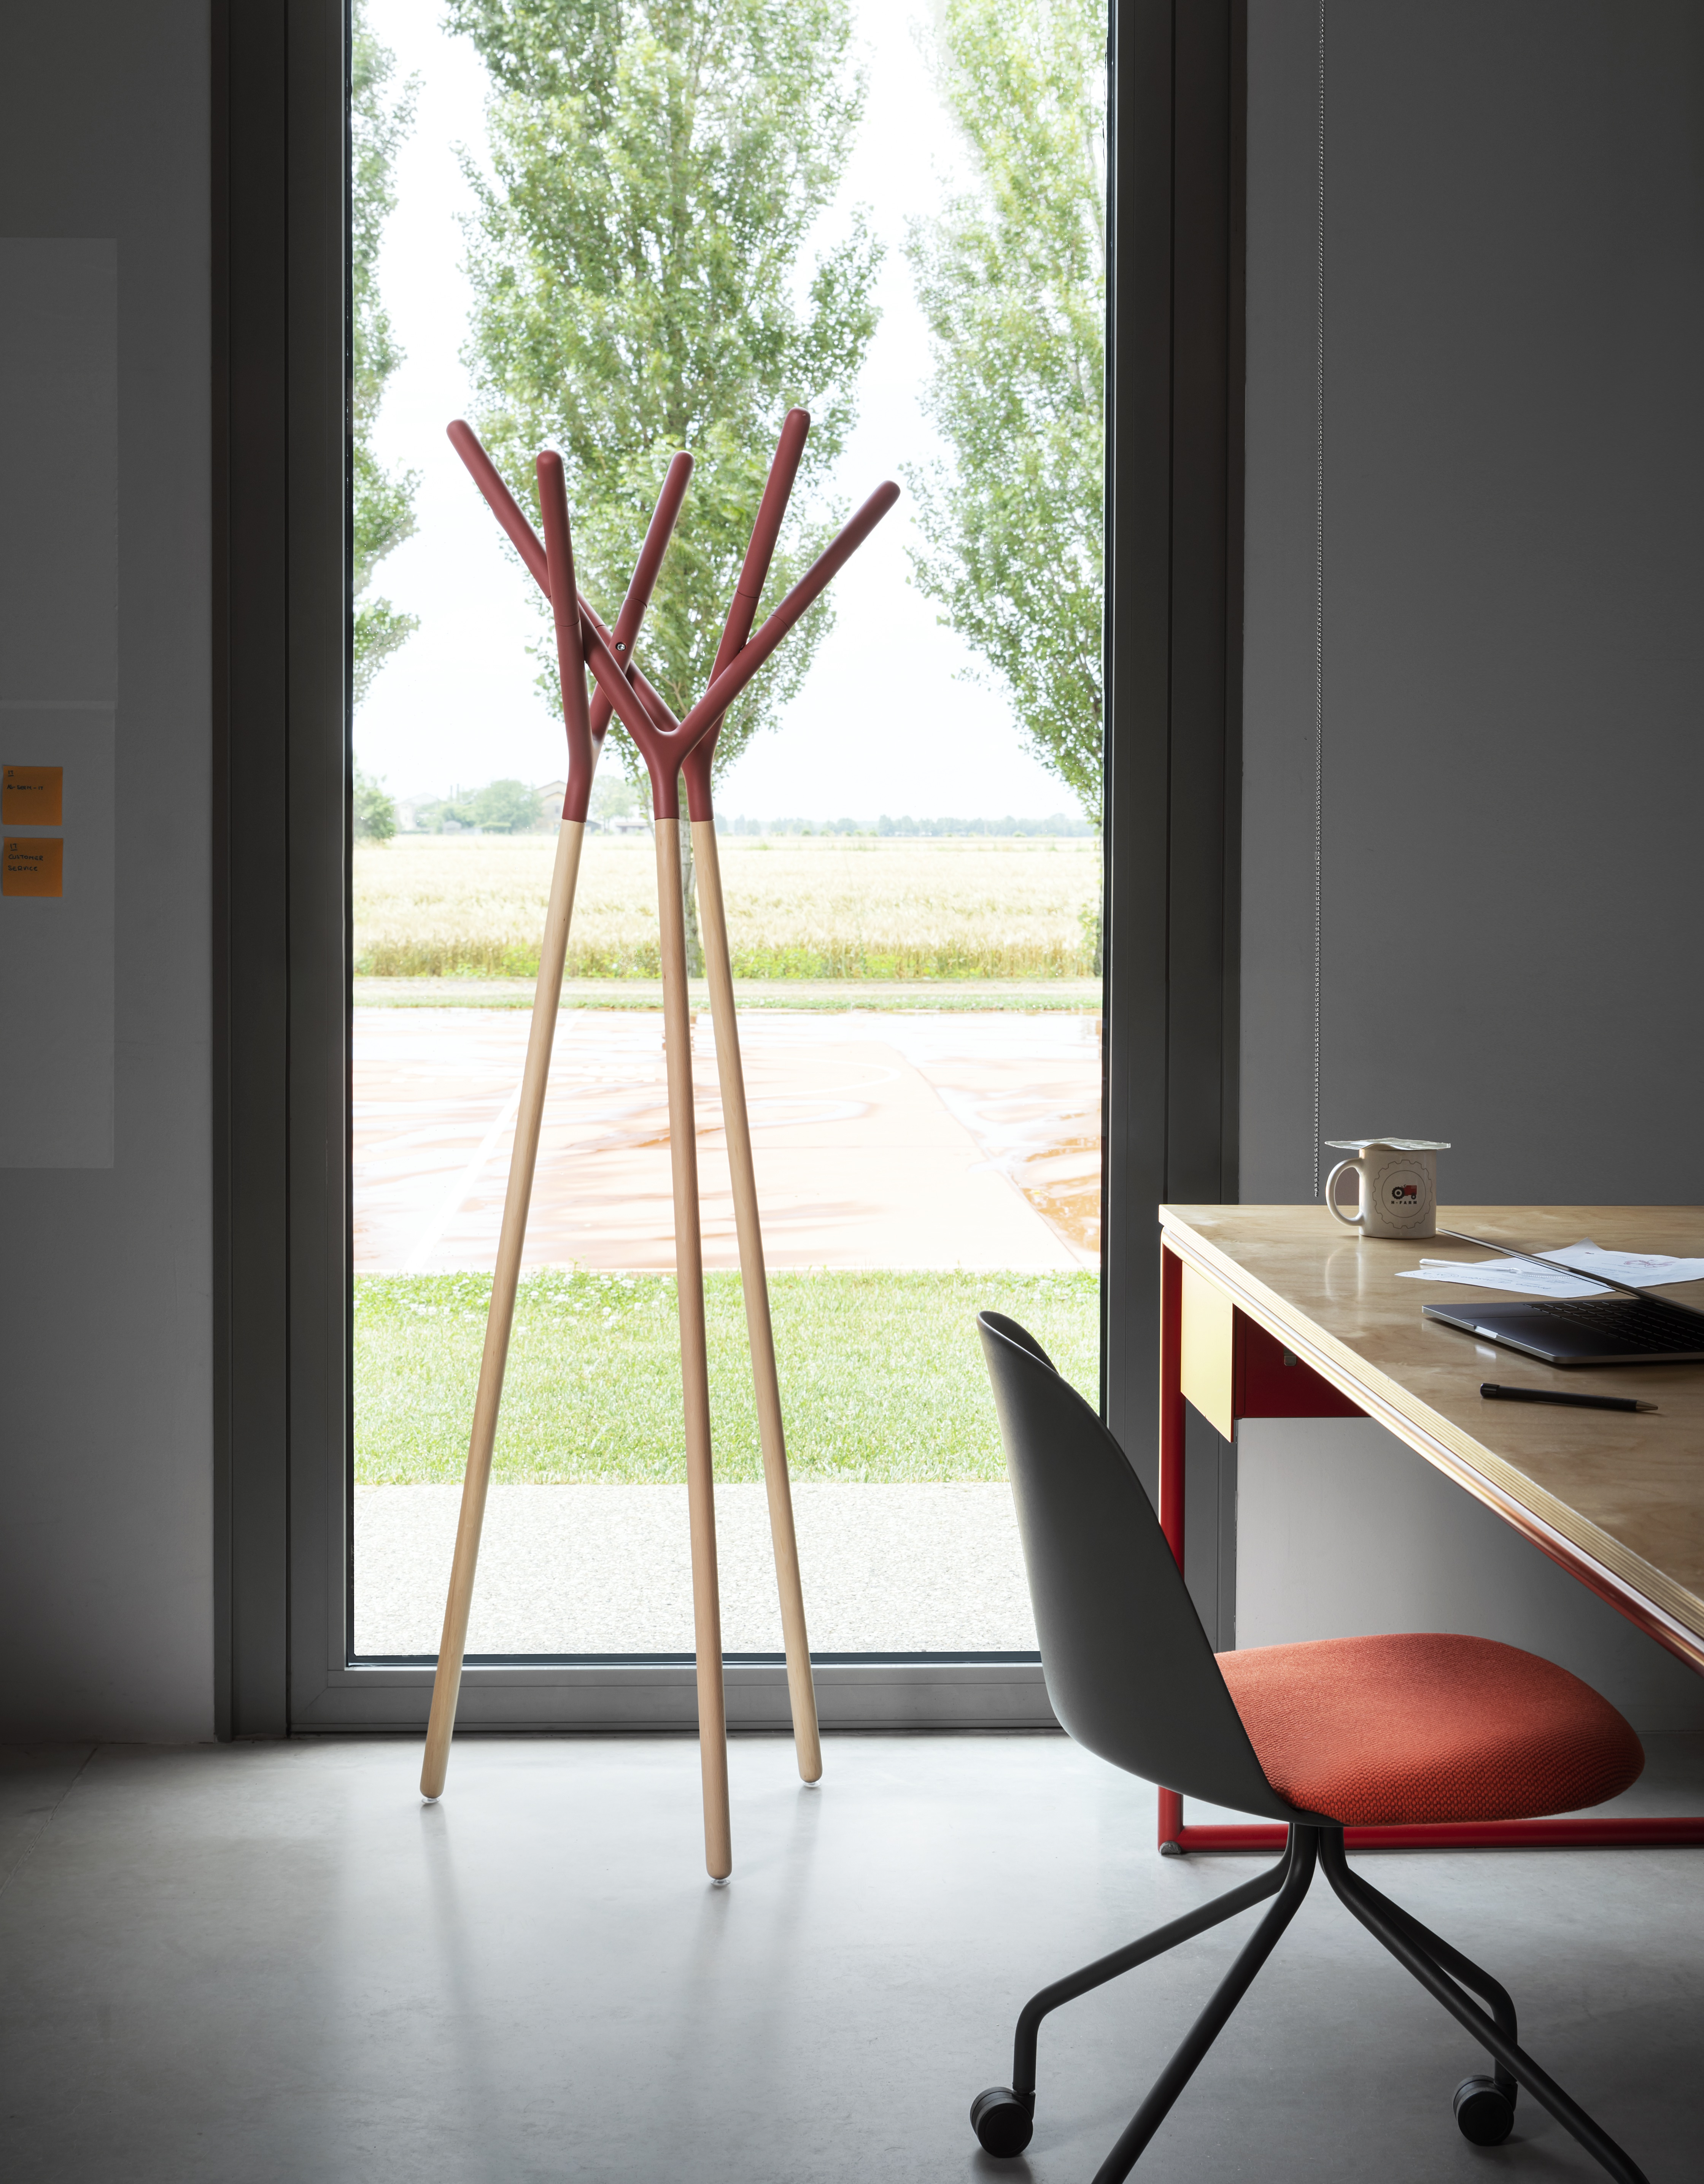 Game of Trust Coat Stand - The three Y-shaped elements support each other, finding in unity an extremely stable balance. This makes Game of Trust an iconic, theatrical coat stand, where no component prevails.  | Matter of Stuff